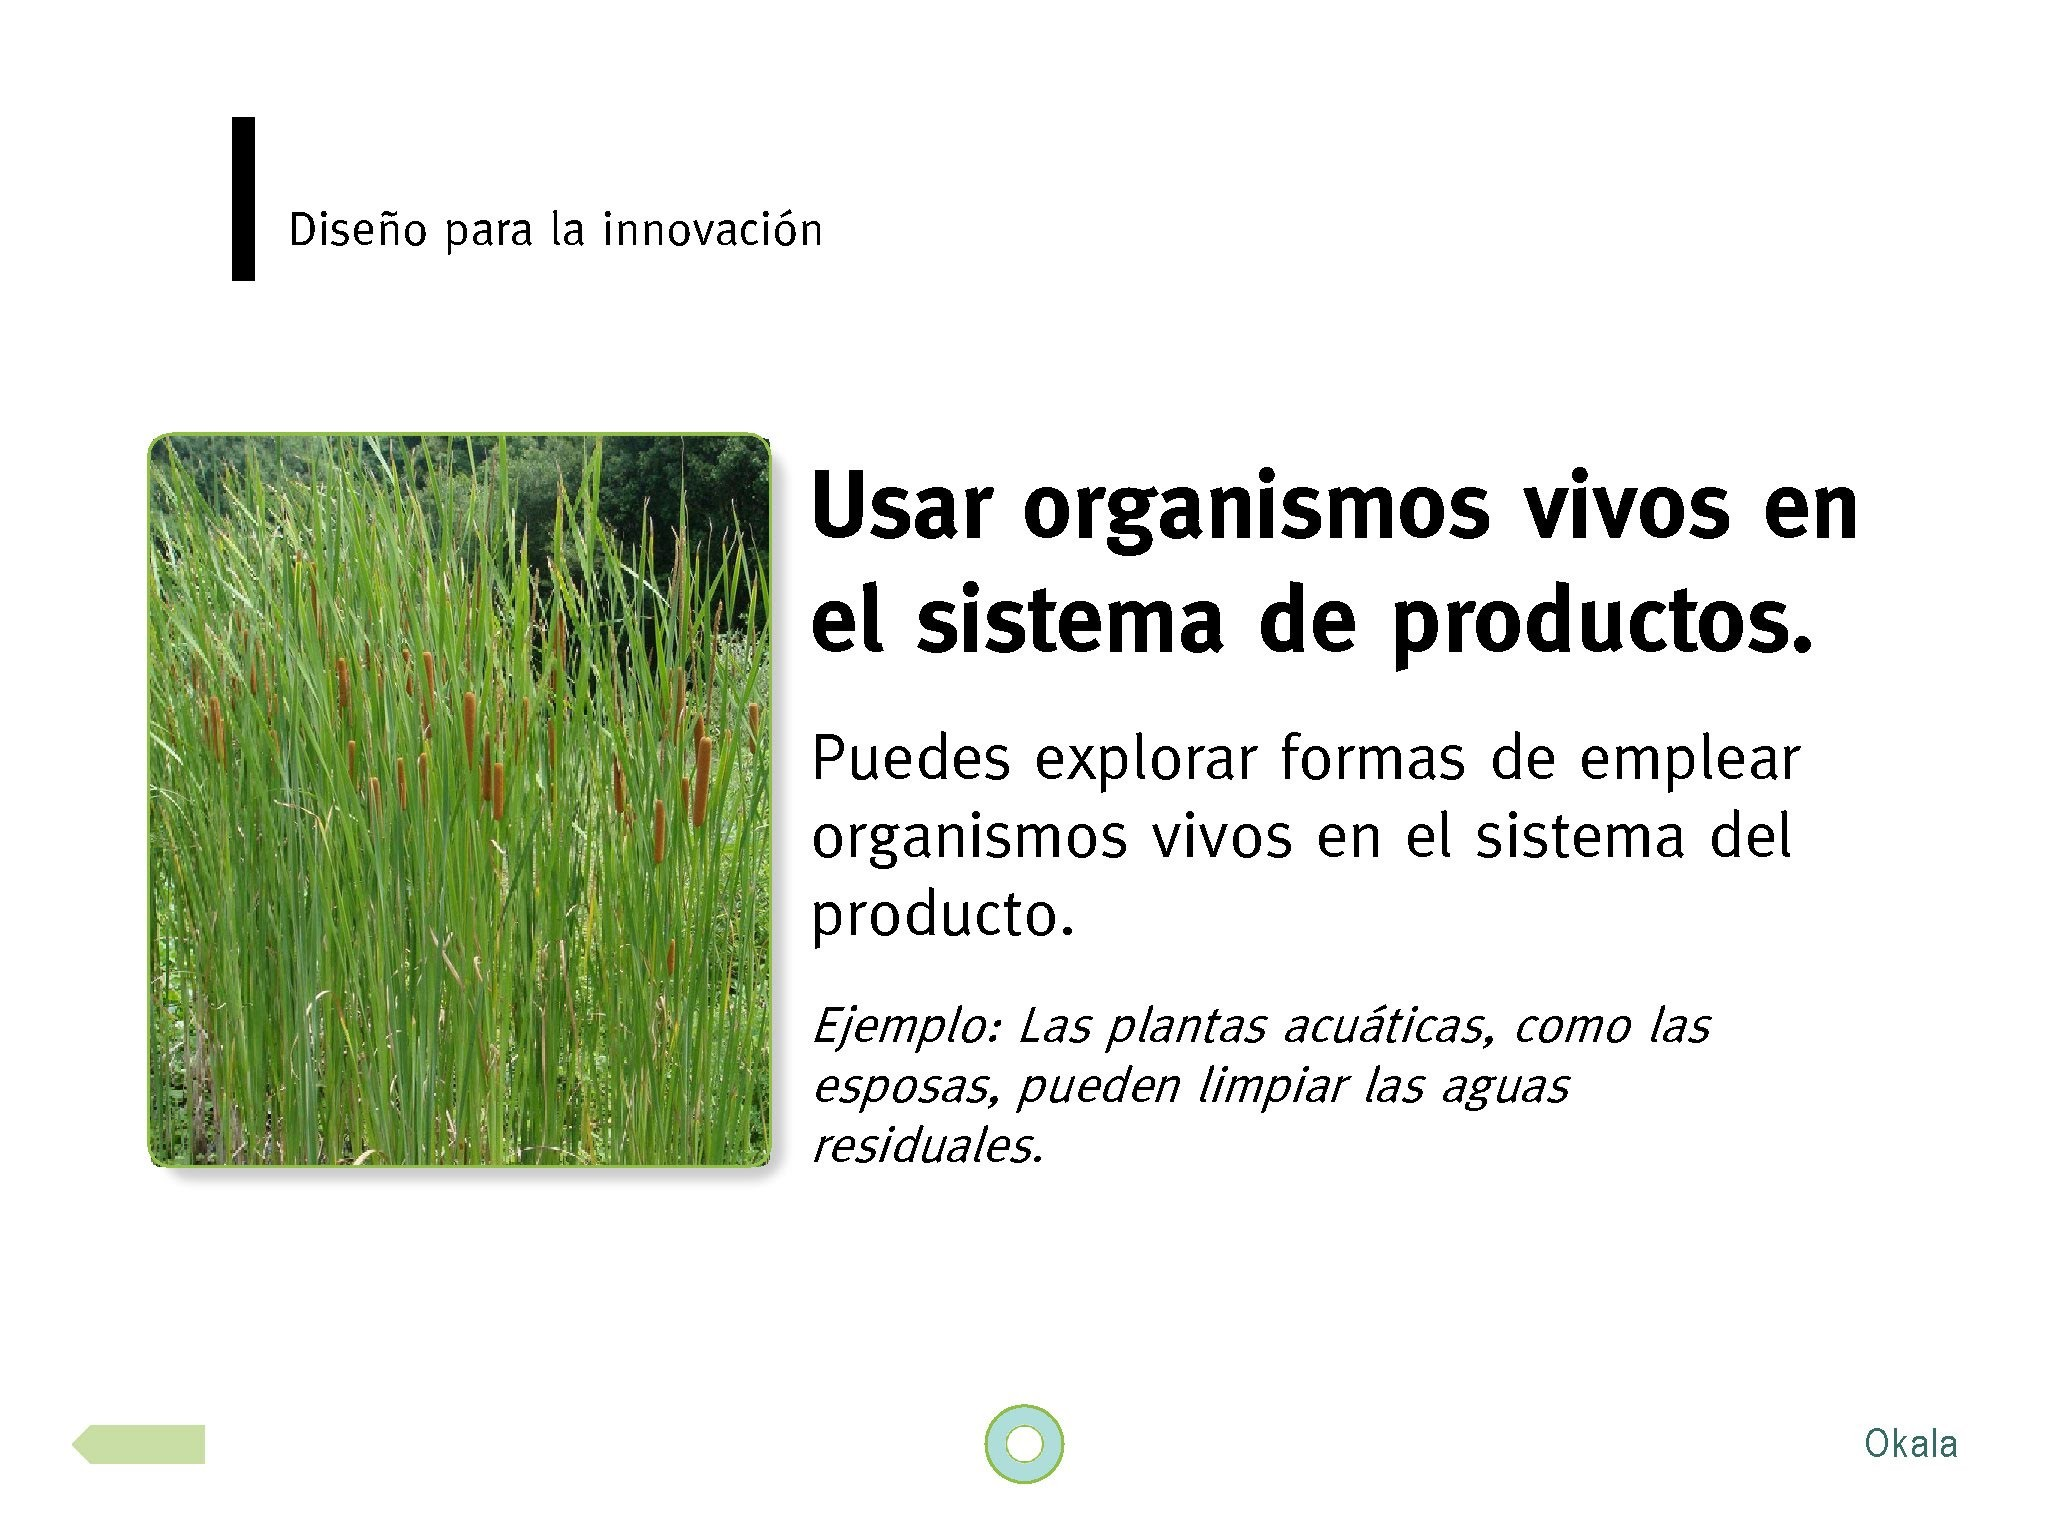 okala-ecodesign-strategy-guide-2012-spanish.new_page_07-1